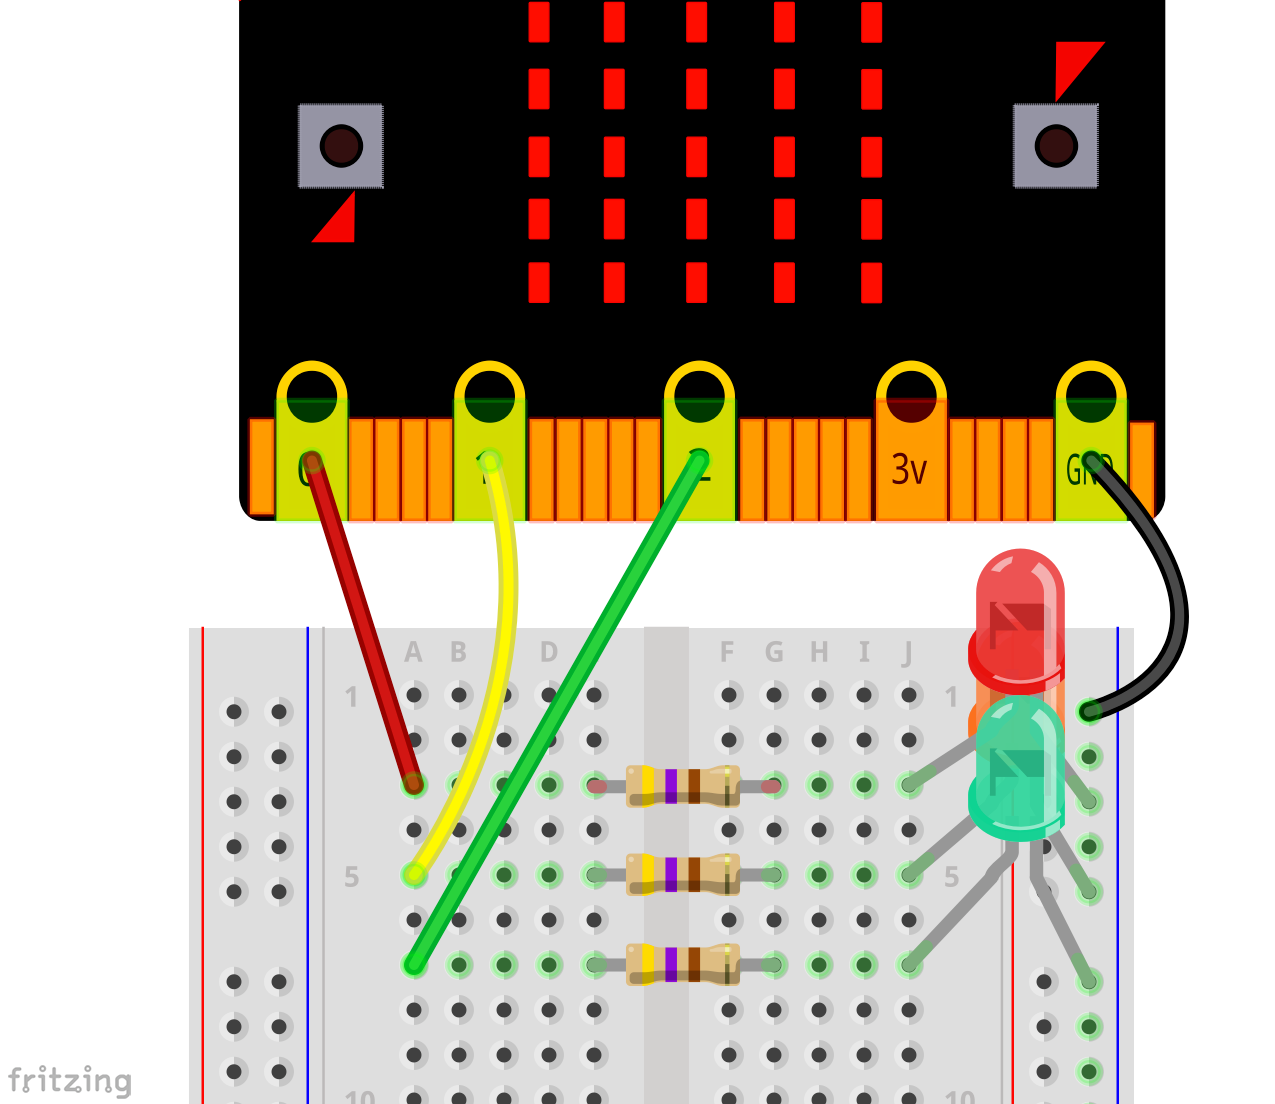 leds_breadboard_traffic_signal.png